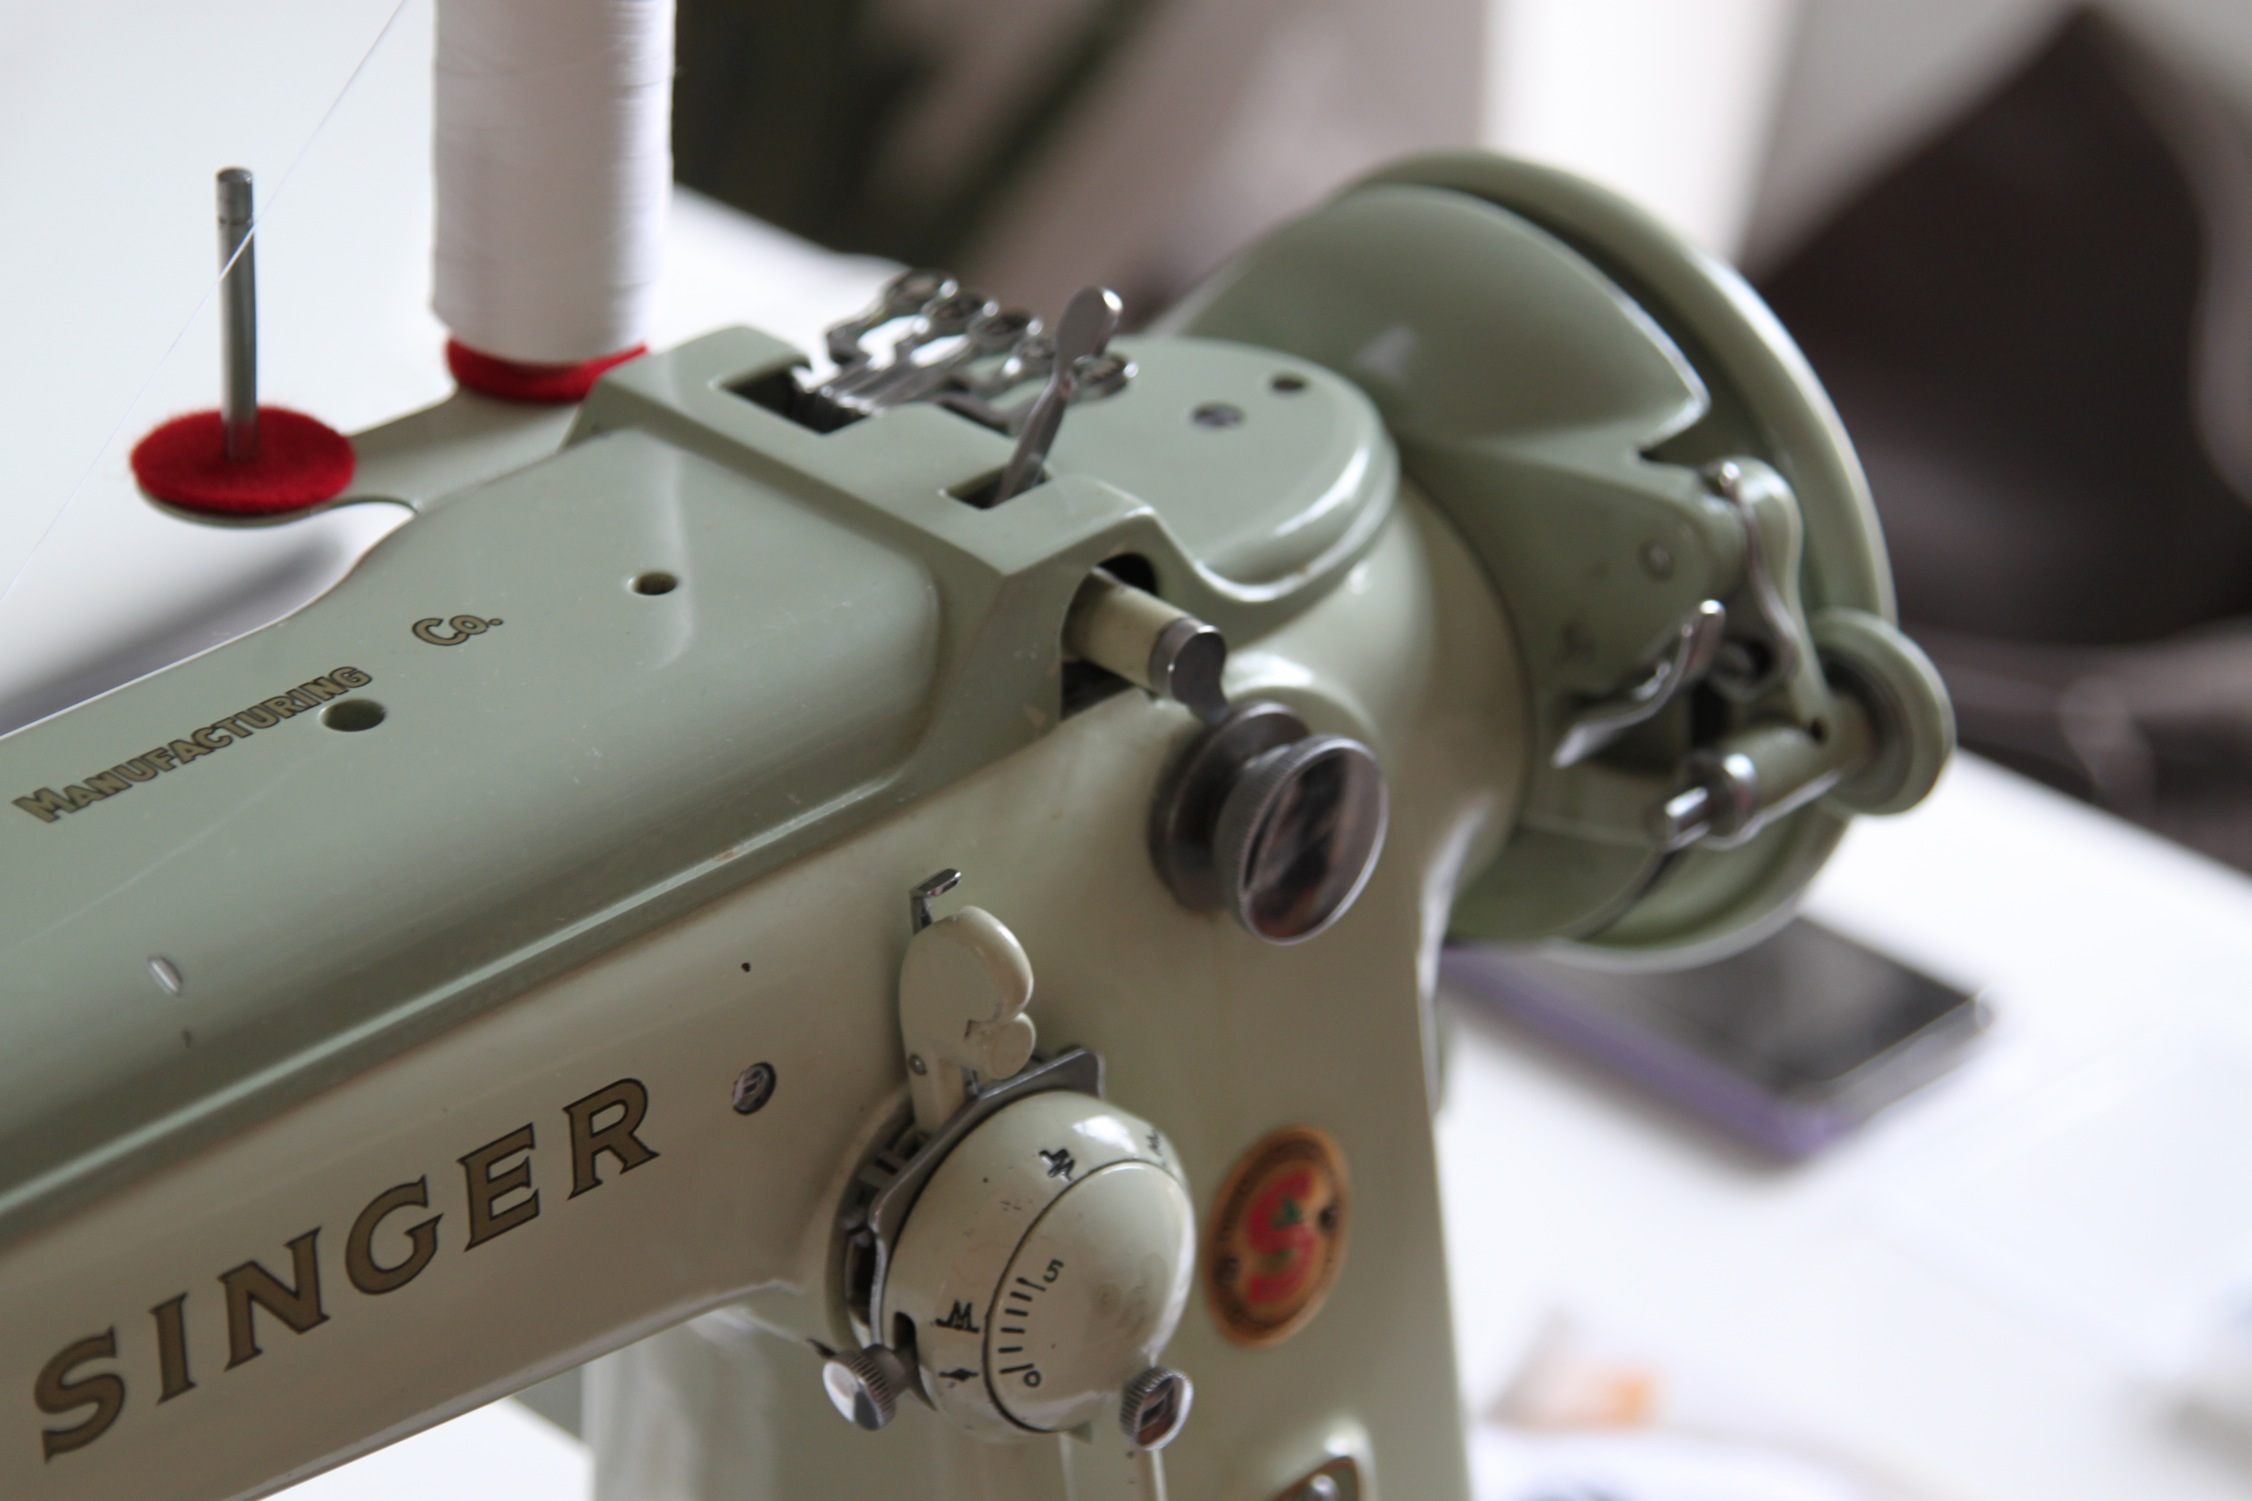 Singer 320k Sewing Machine Tinyinc 401 Threading Diagram Stitch Selectors Which Explain Why It Was Called The Typewriter